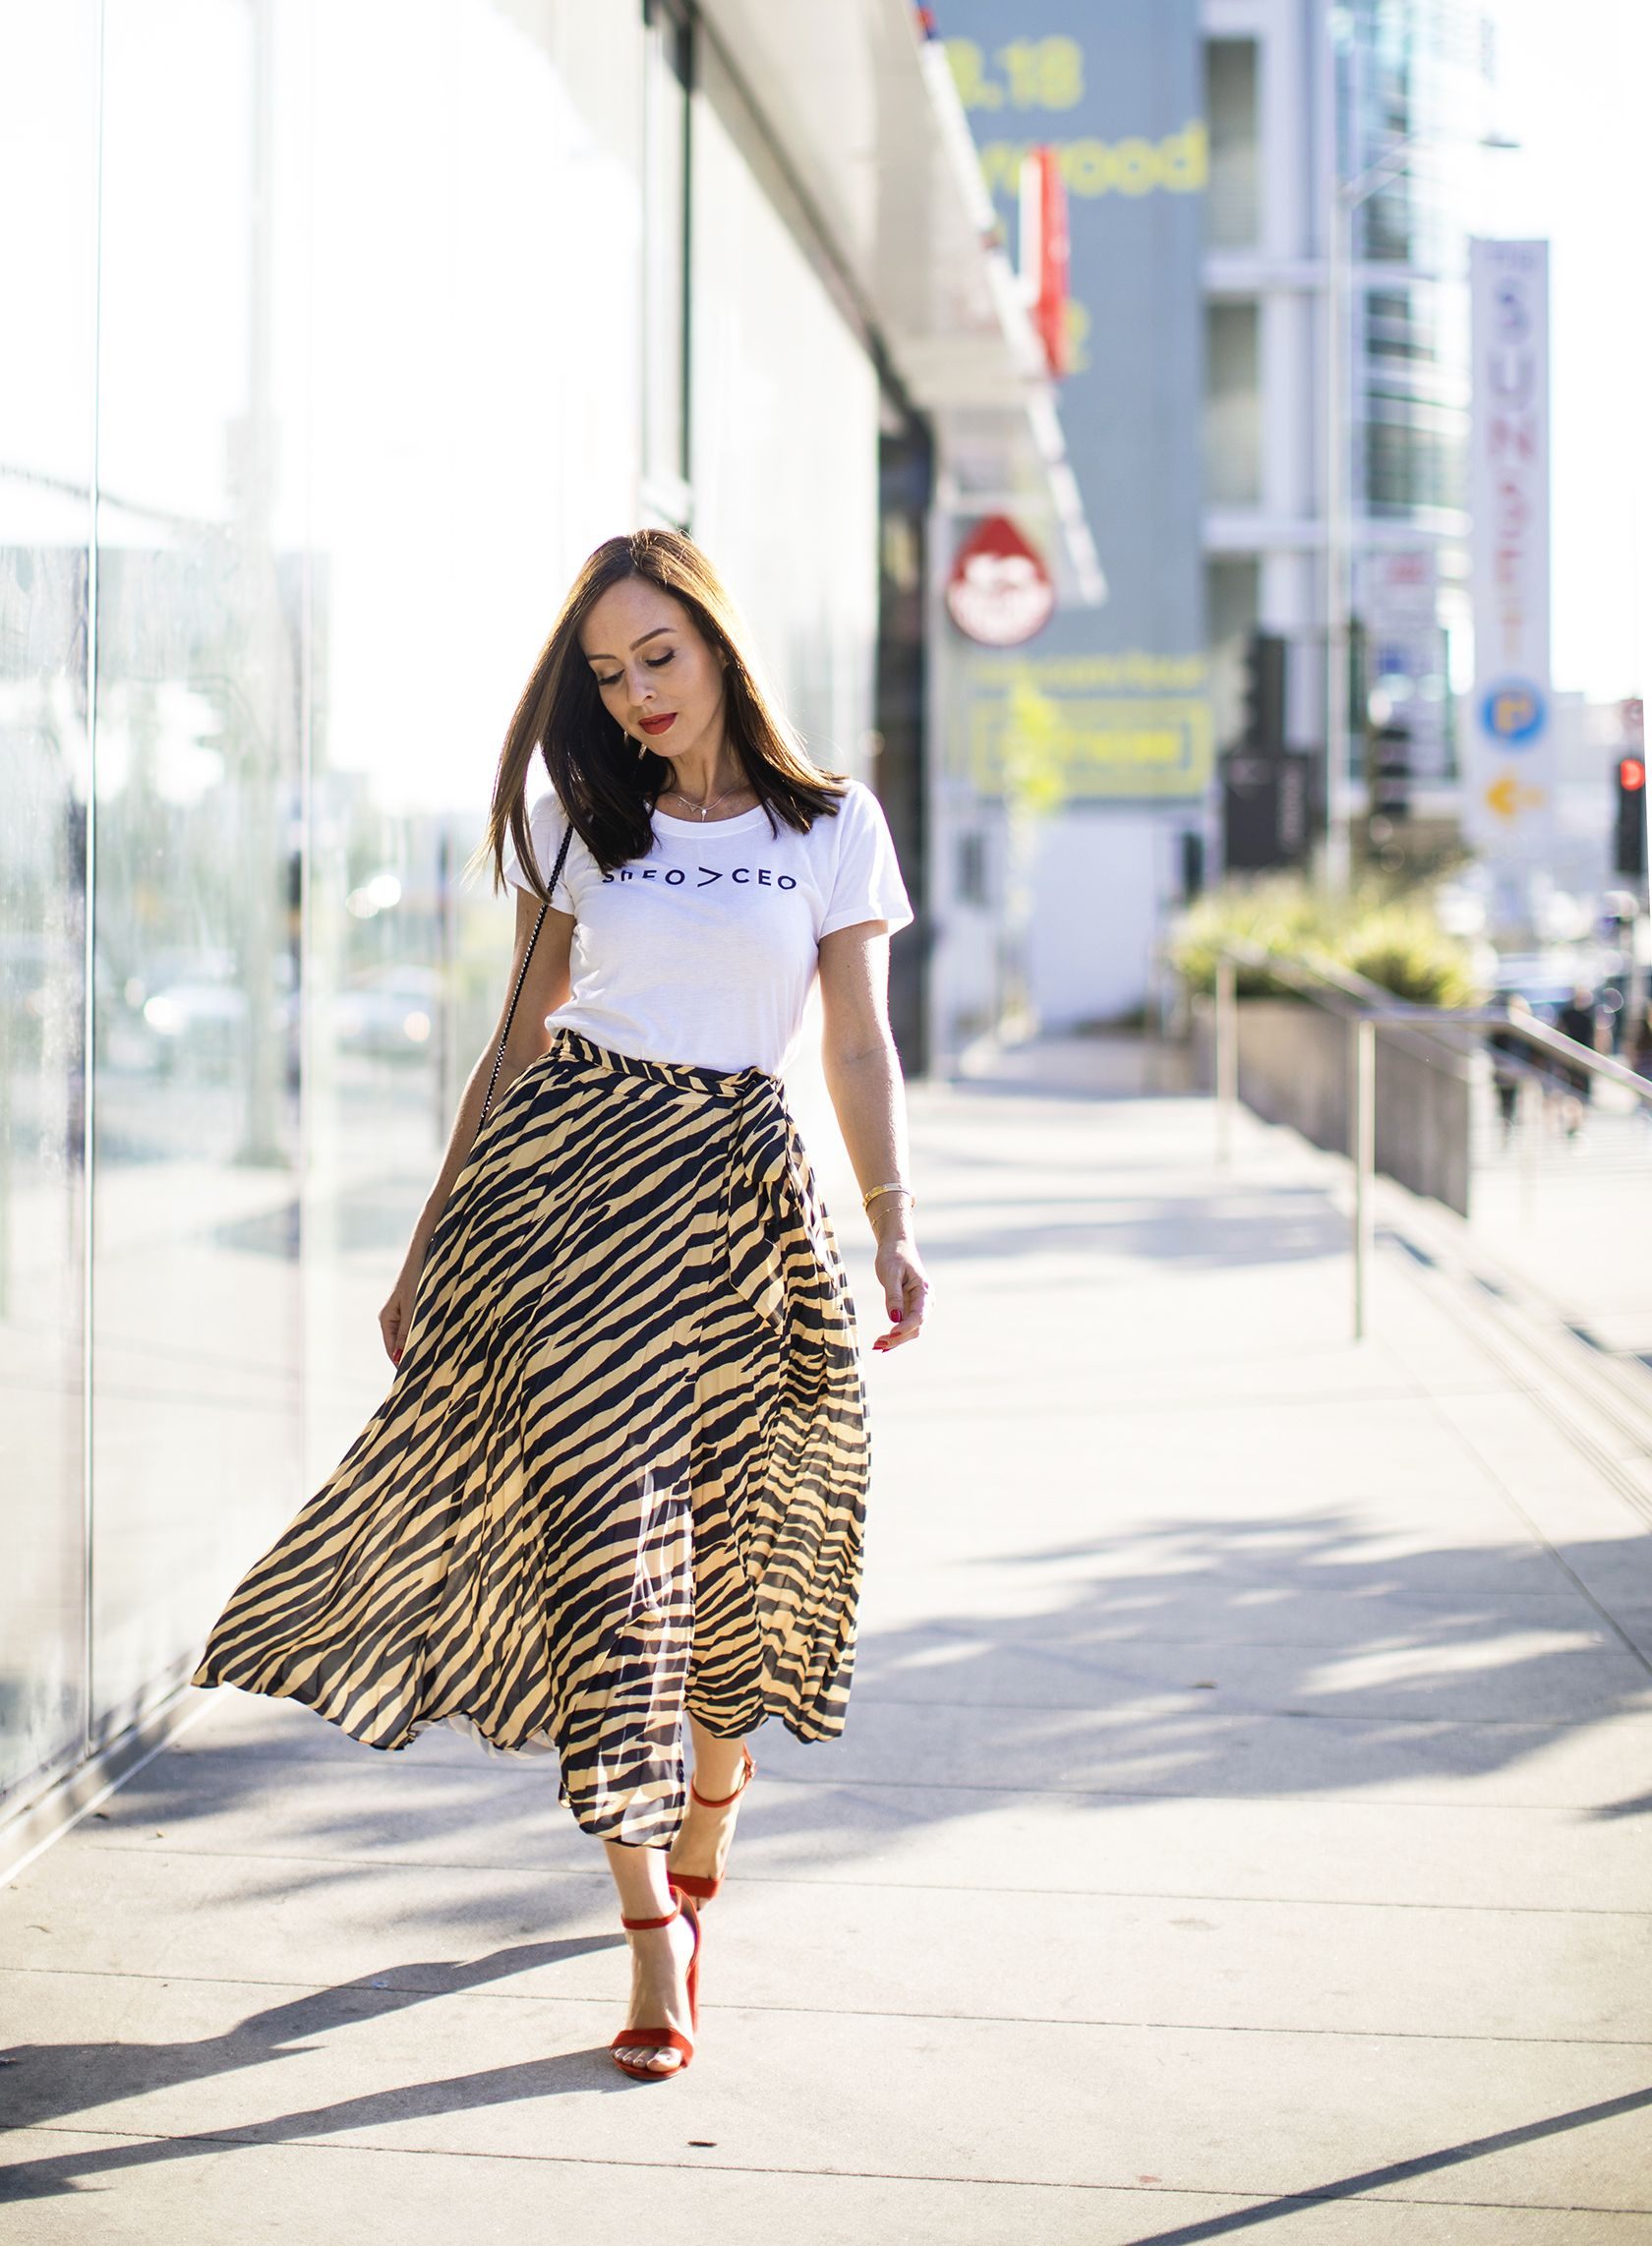 d6a7519ad064 Sydne Style shows how to wear the animal print trend with topshop zebra  print skirt #zebra #skirts #tees #tshirt #graphictee